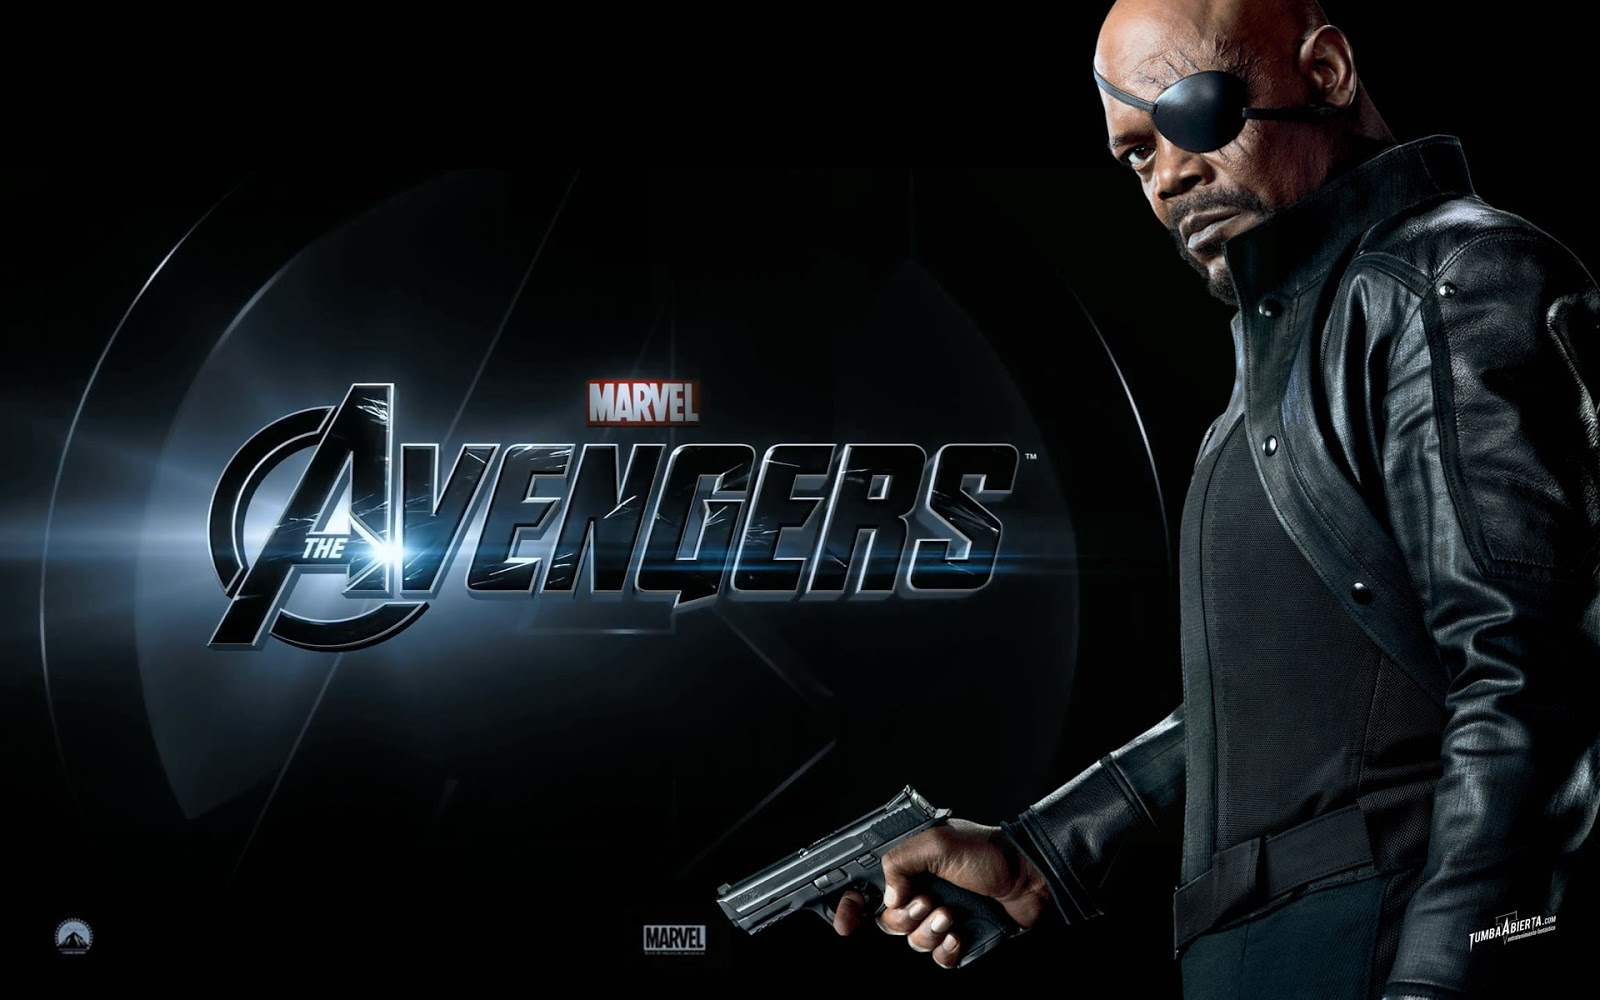 Nick Fury in the Avengers Wallpaper HD